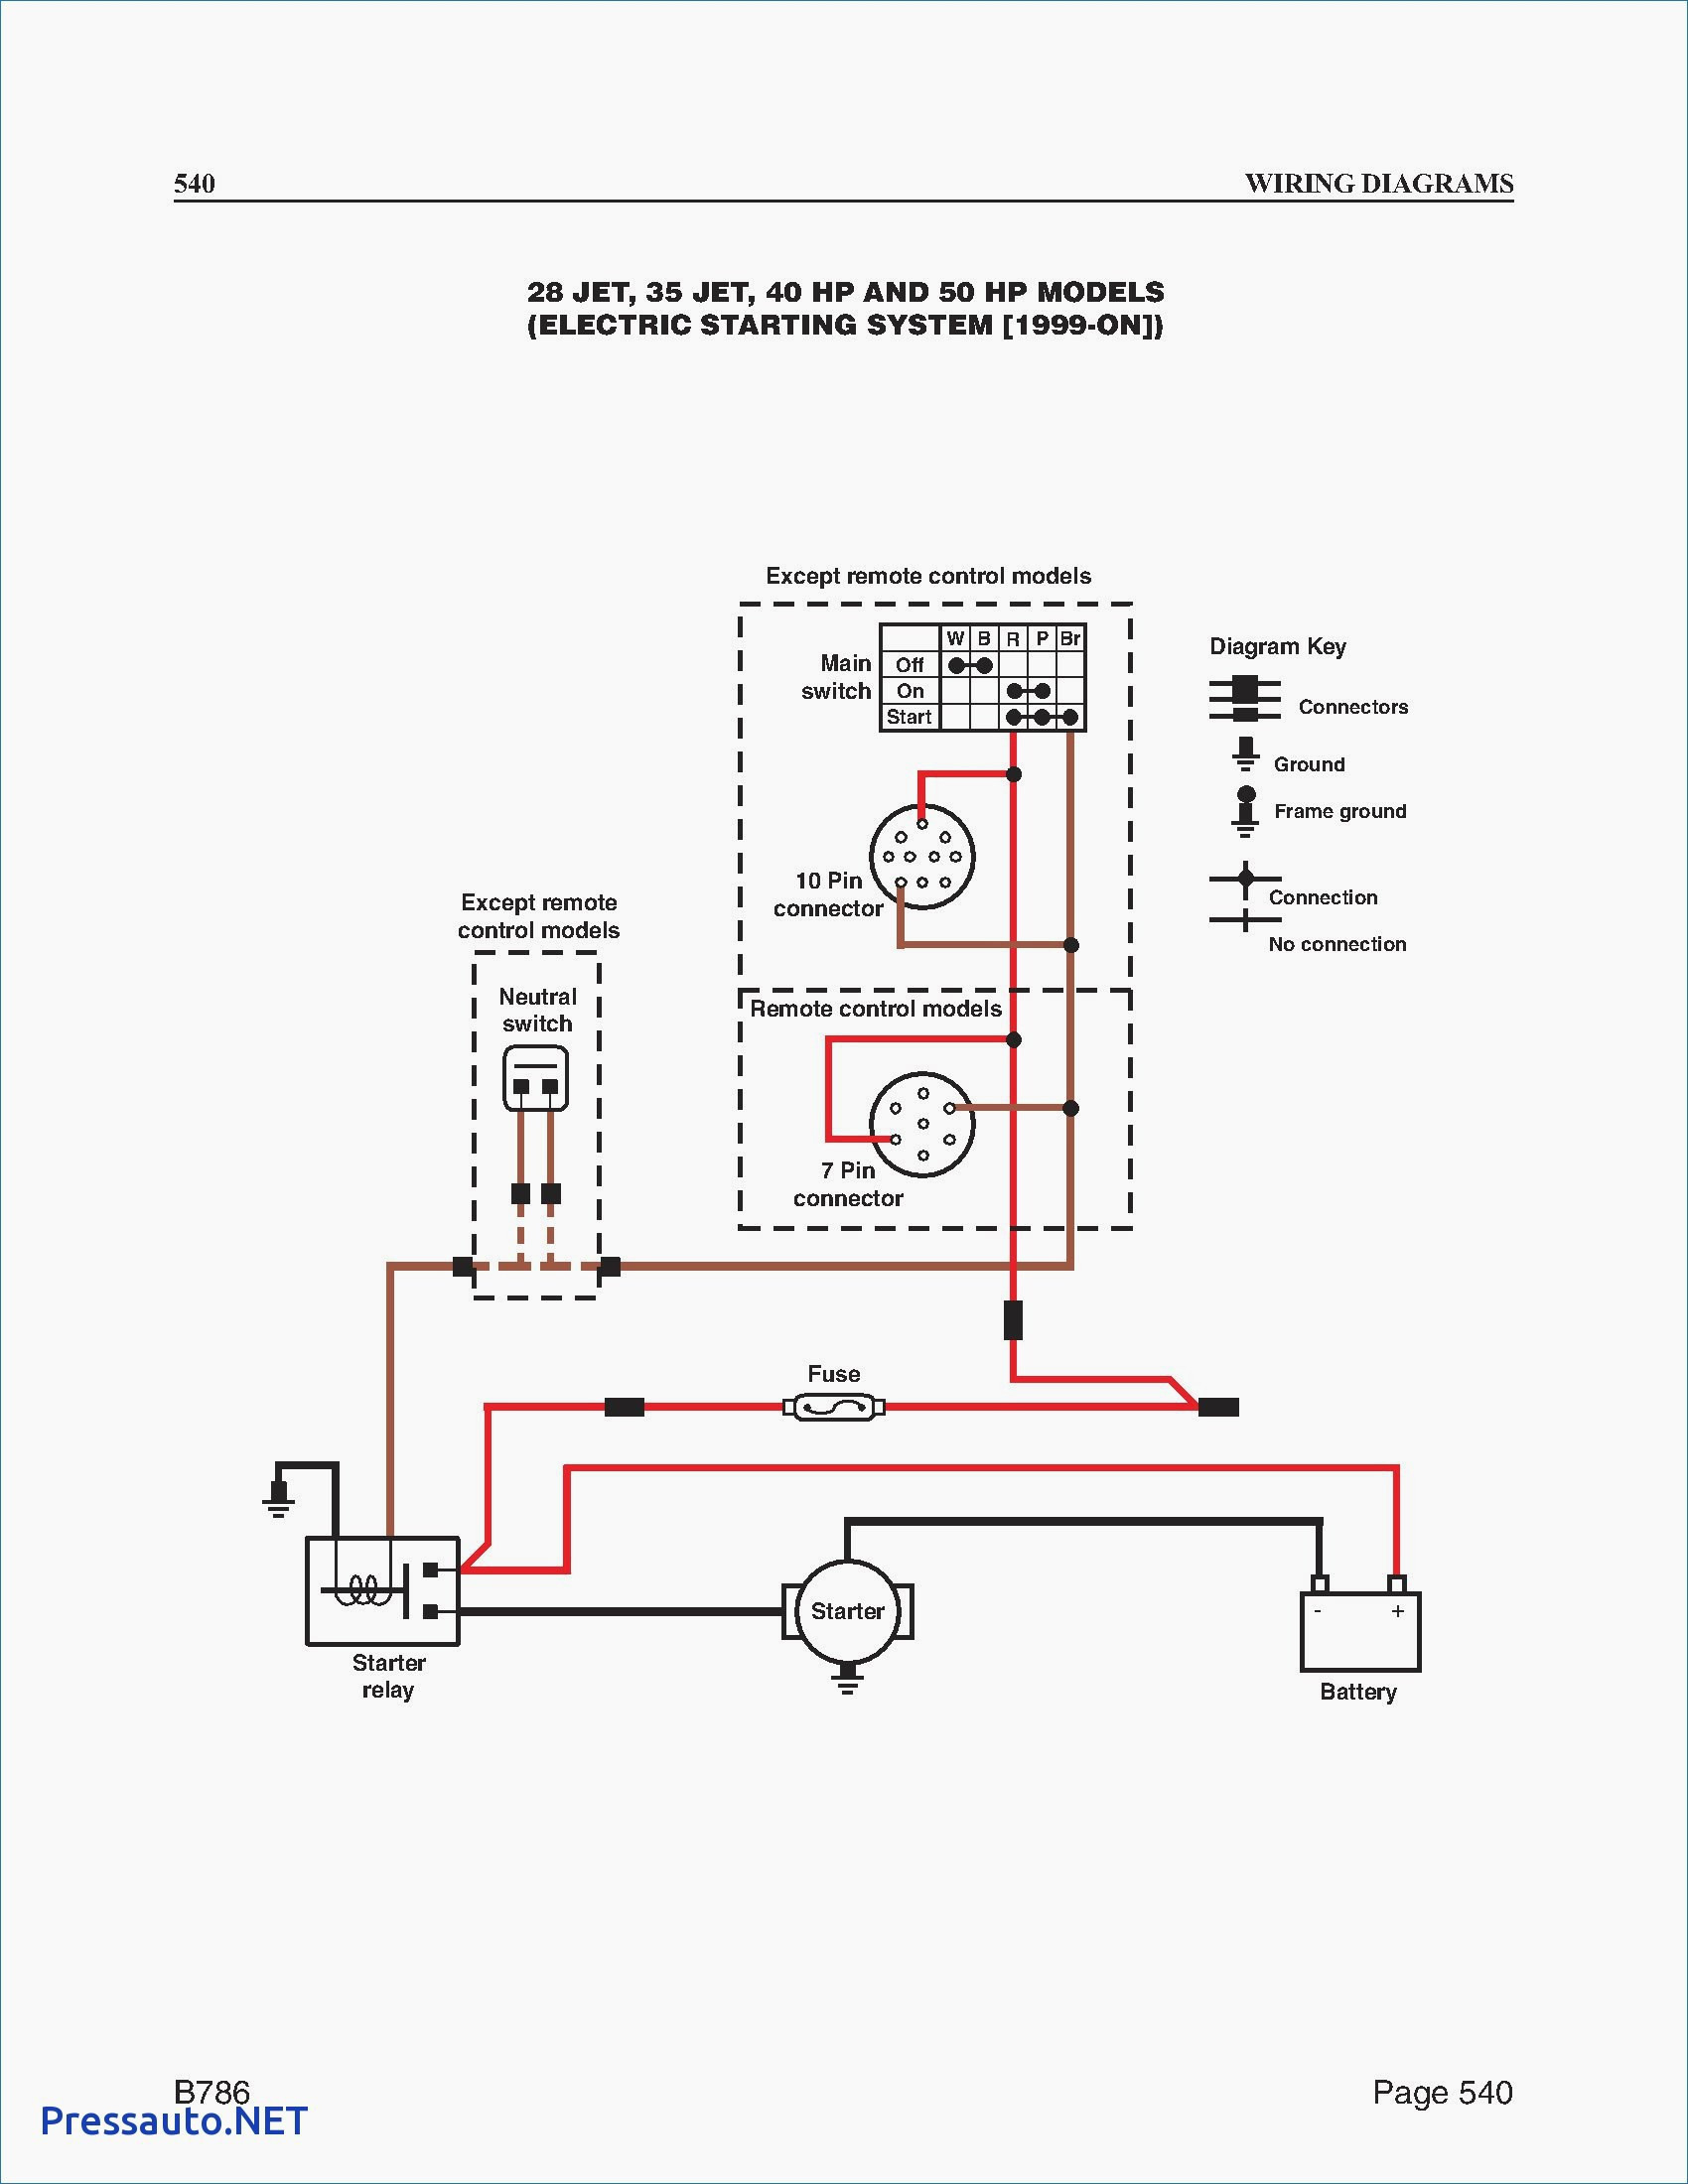 Pilz Relay Wiring Diagram | Wiring Diagram on lucas relay wiring, allen bradley relay wiring, crydom relay wiring, siemens relay wiring, bosch relay wiring, idec relay wiring, finder relay wiring,